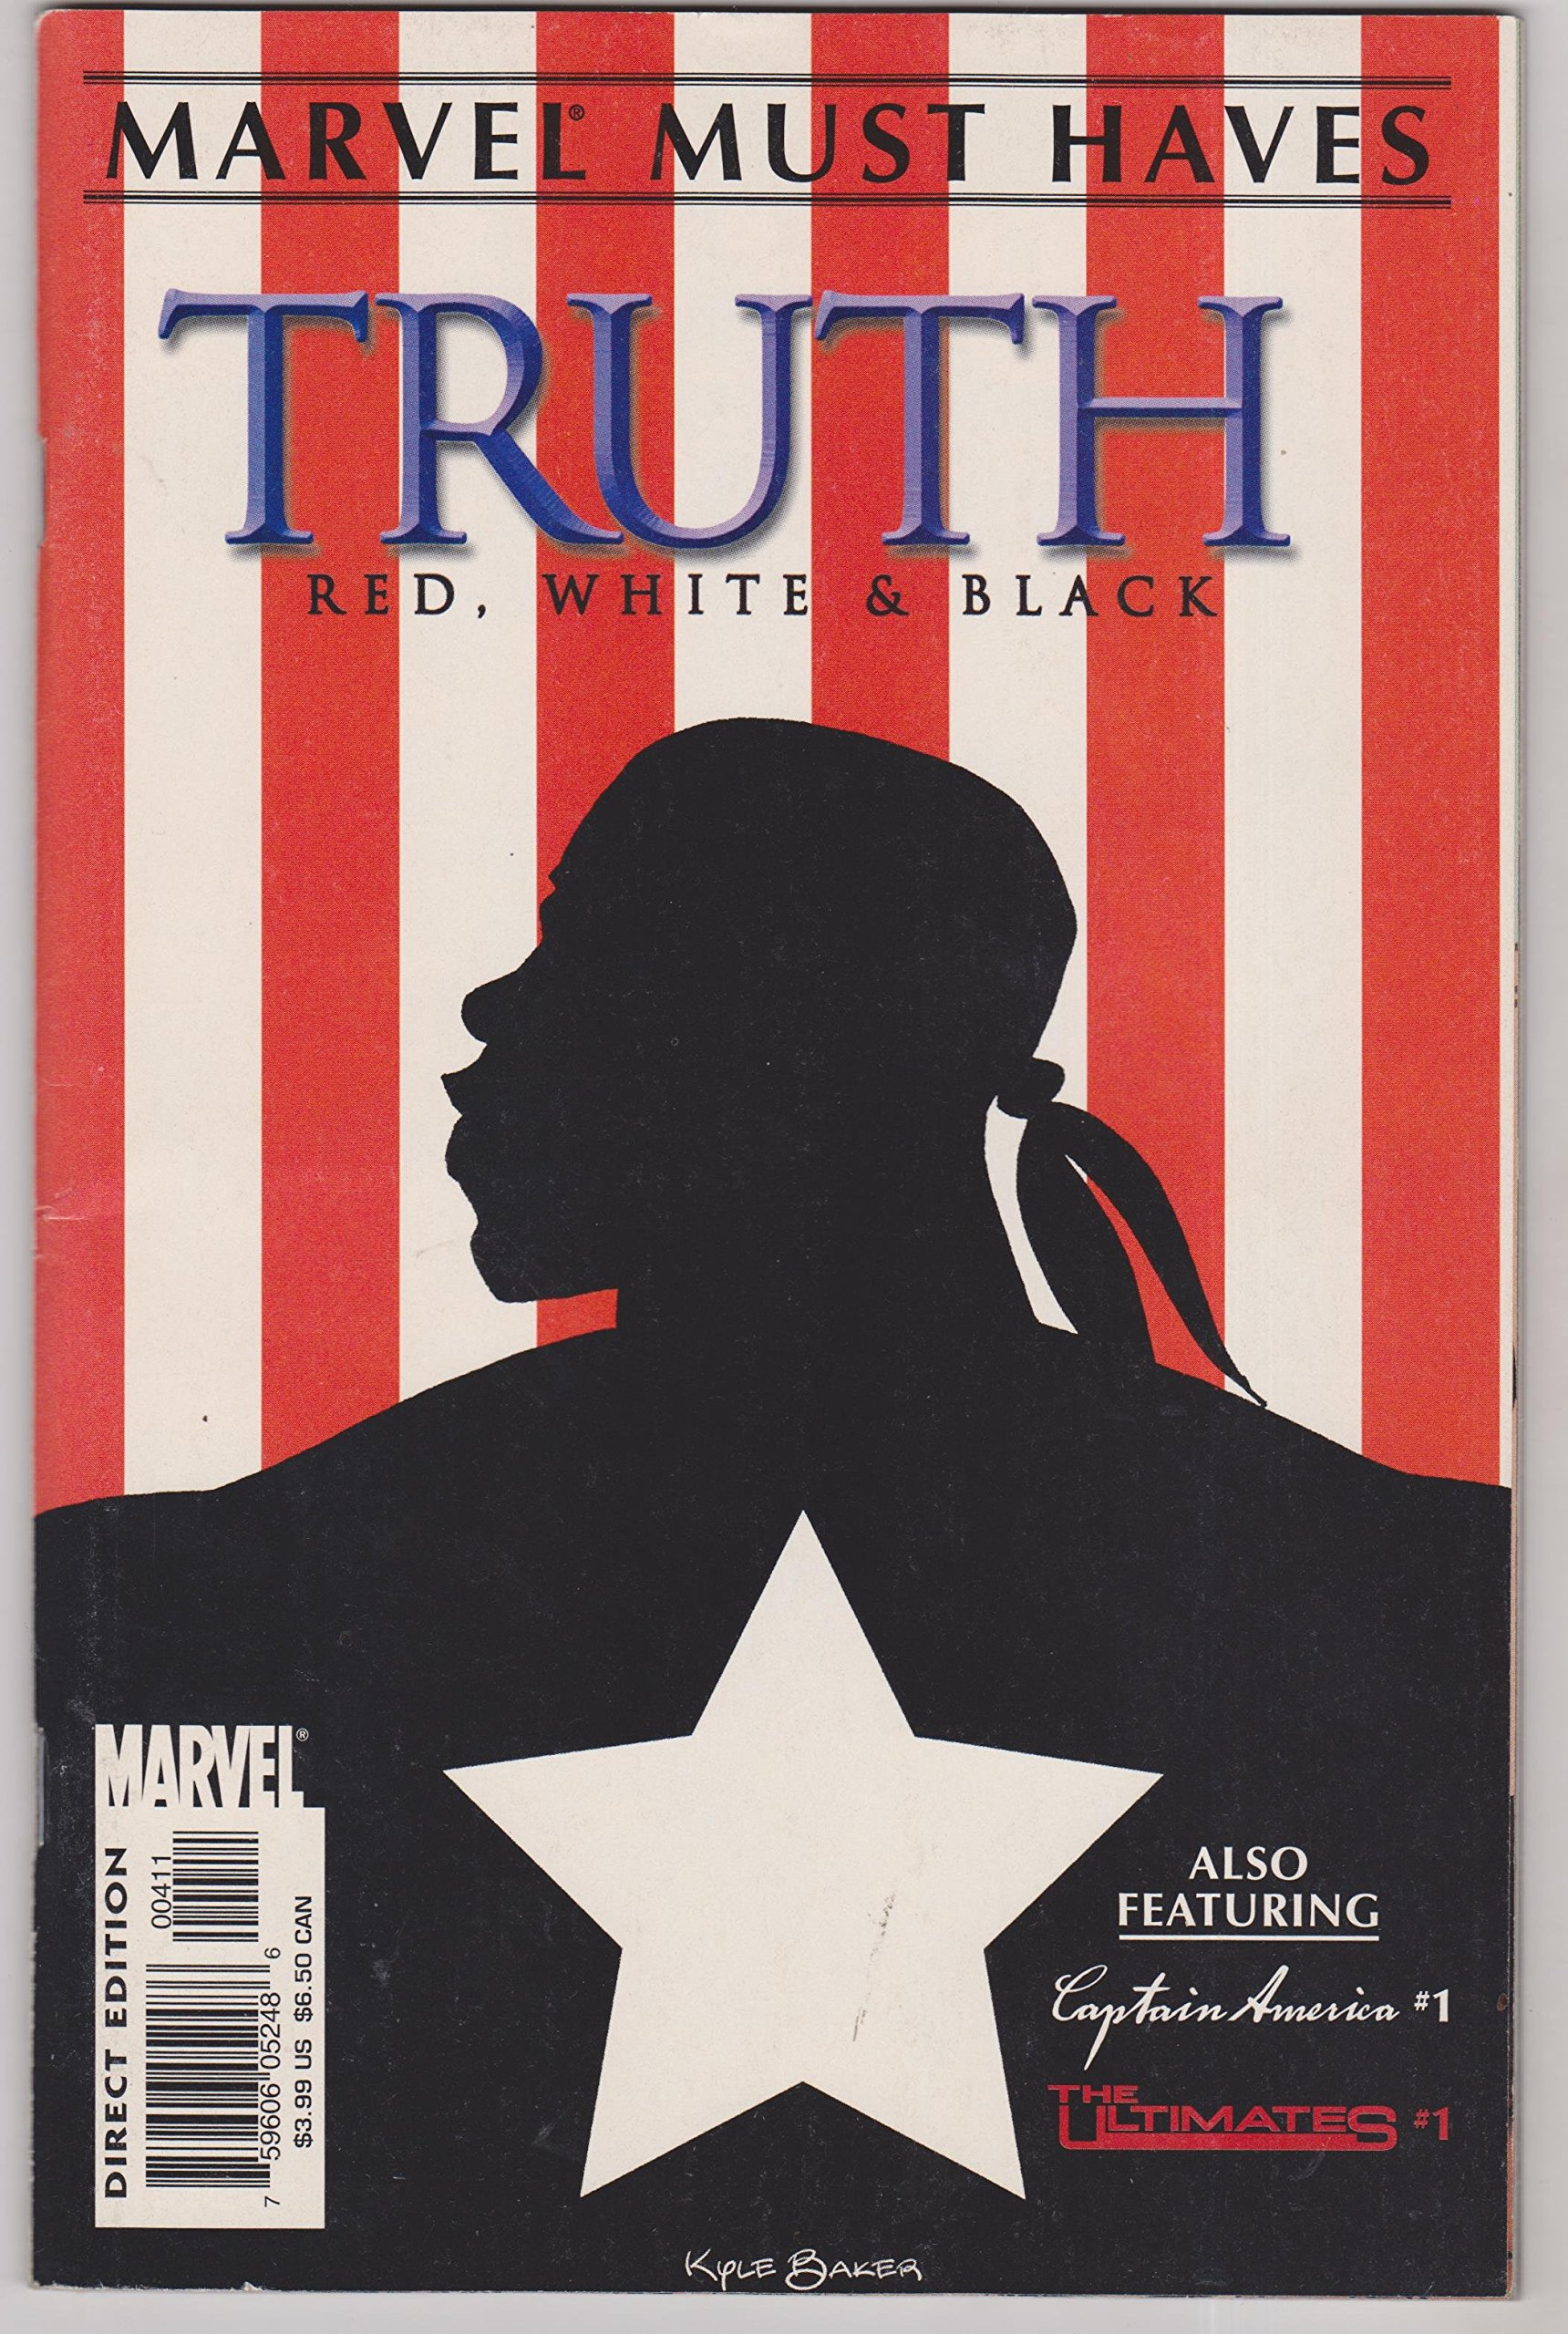 Download MARVEL MUST HAVES - VOLUME 1, NUMBER 4 - TRUTH RED, WHITE AND BLACK PDF